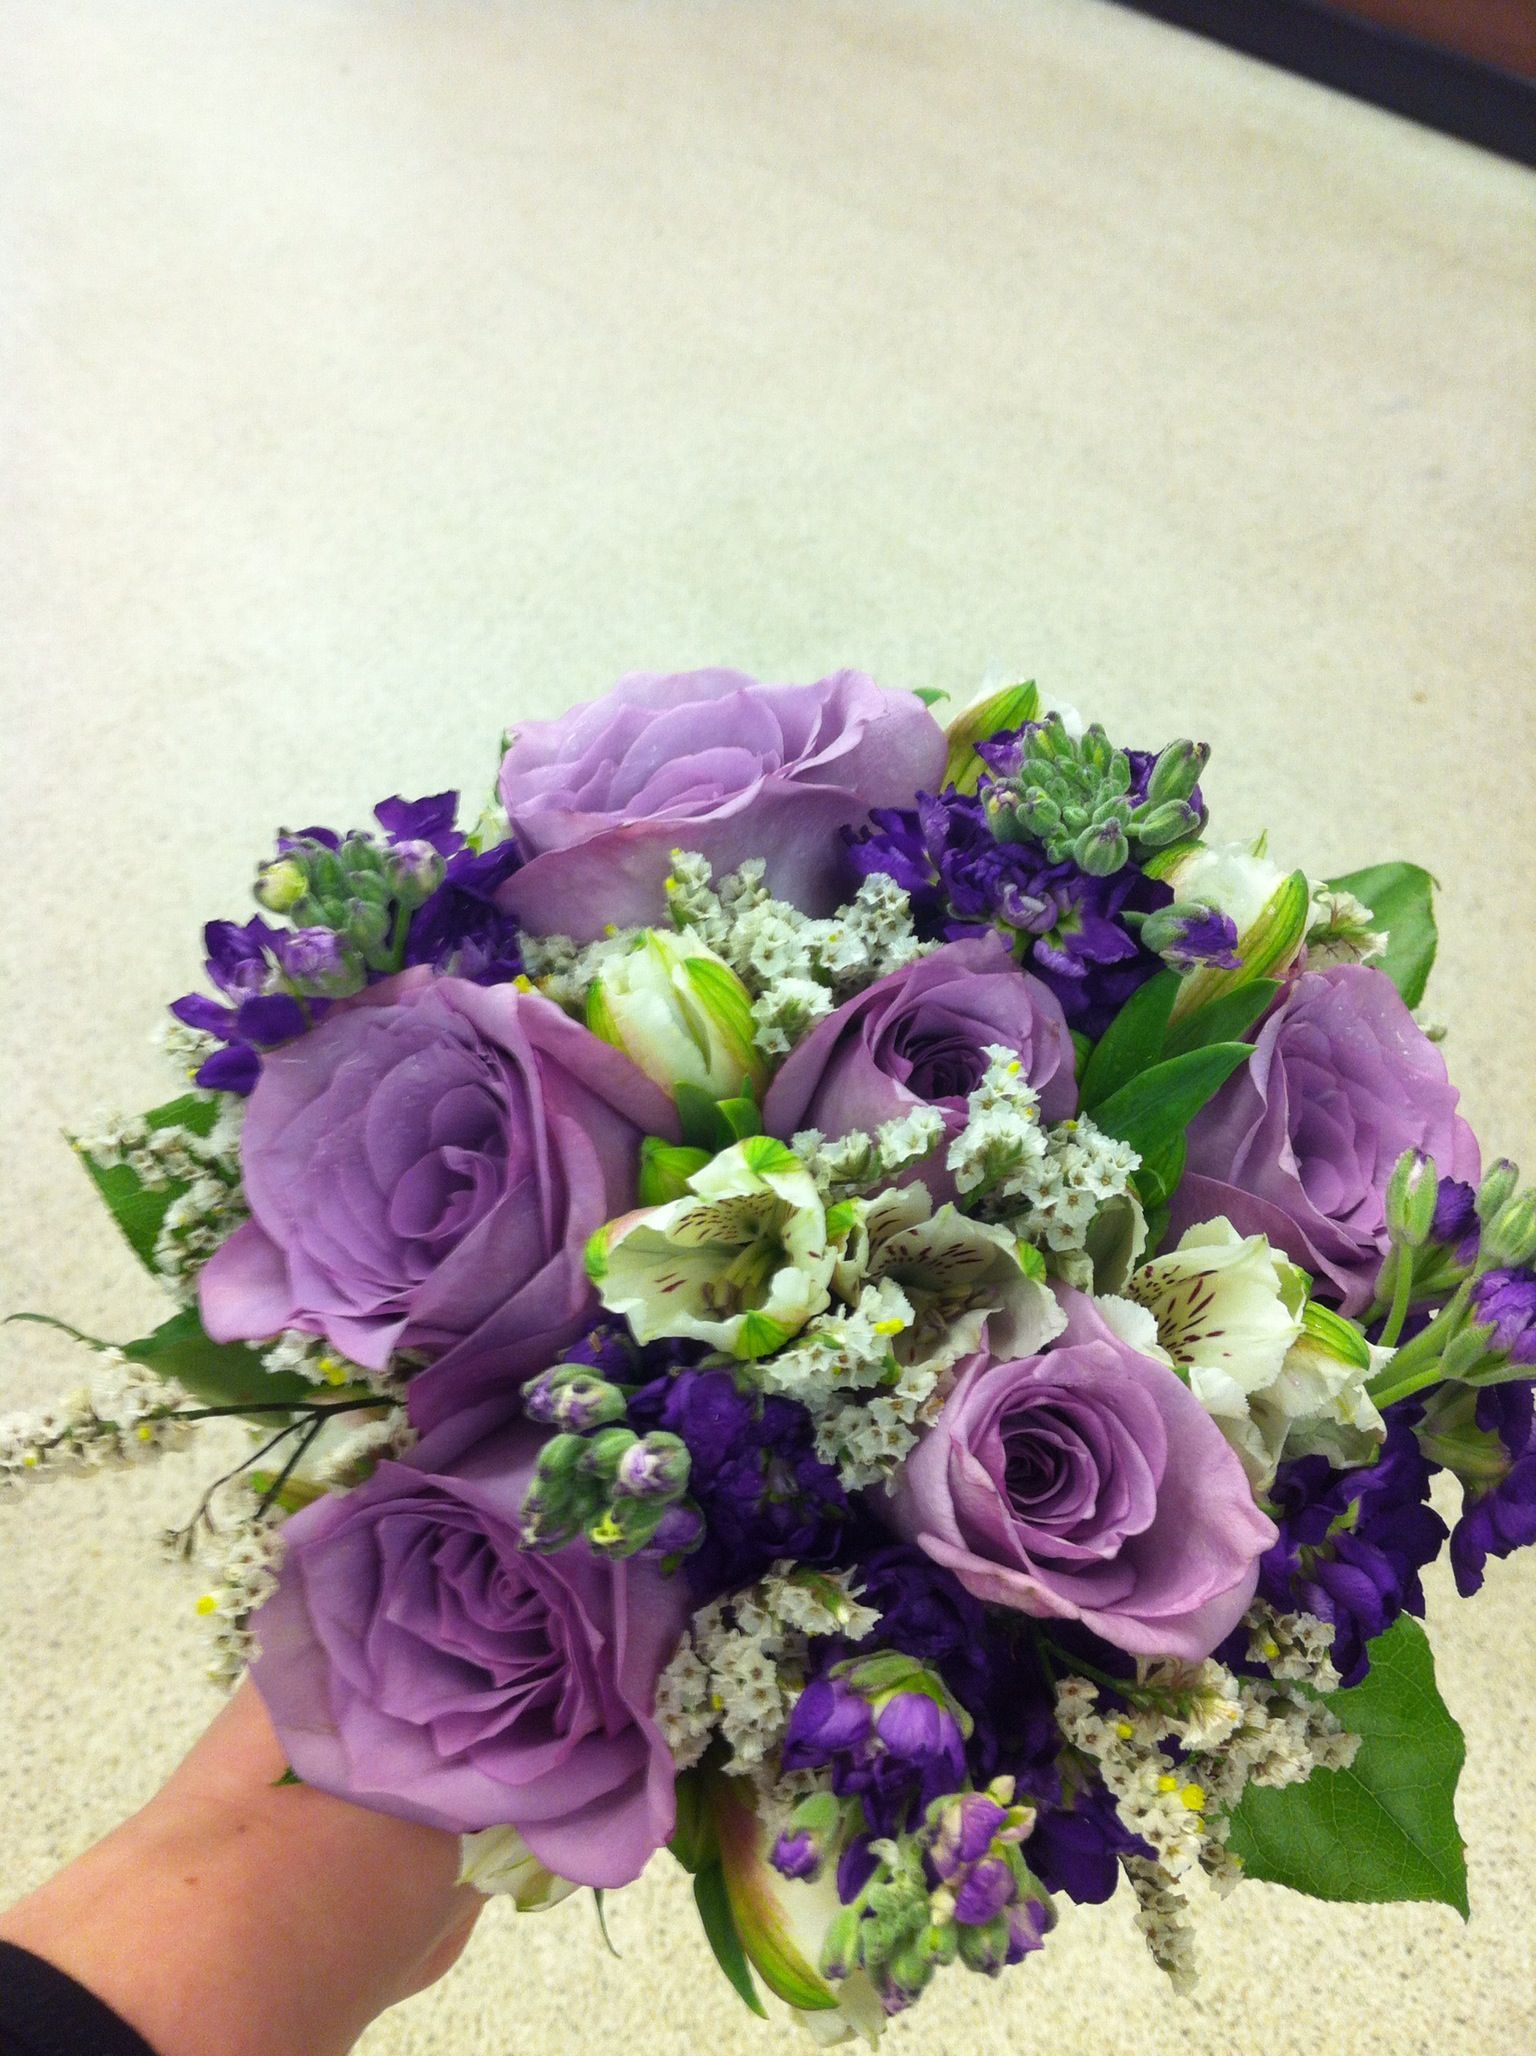 Prom Nosegay With Lavender Roses Purple Stock White Alstroemeria And White Limonium Coordinatin Lavender Flower Centerpieces Homecoming Flowers Prom Flowers